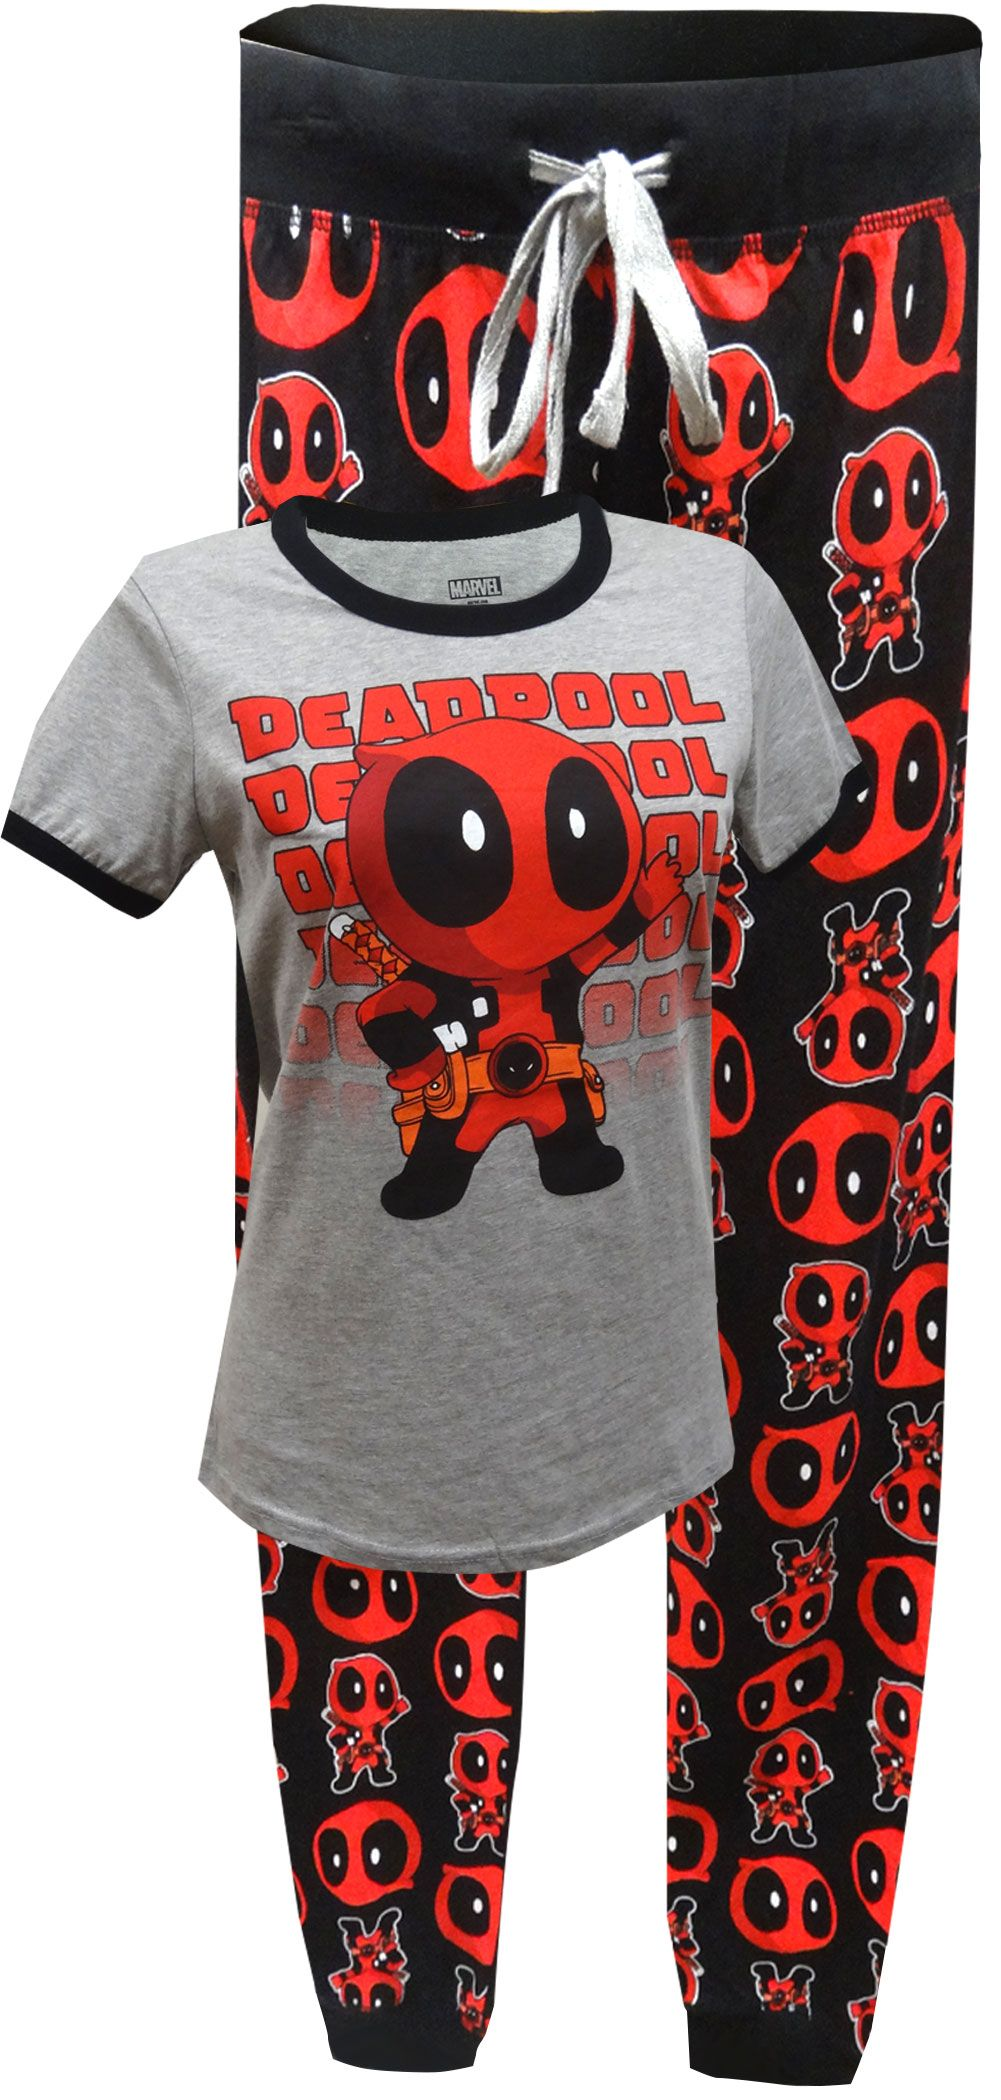 Marvel Comics Deadpool Jogger Pajama  cfbca2e02